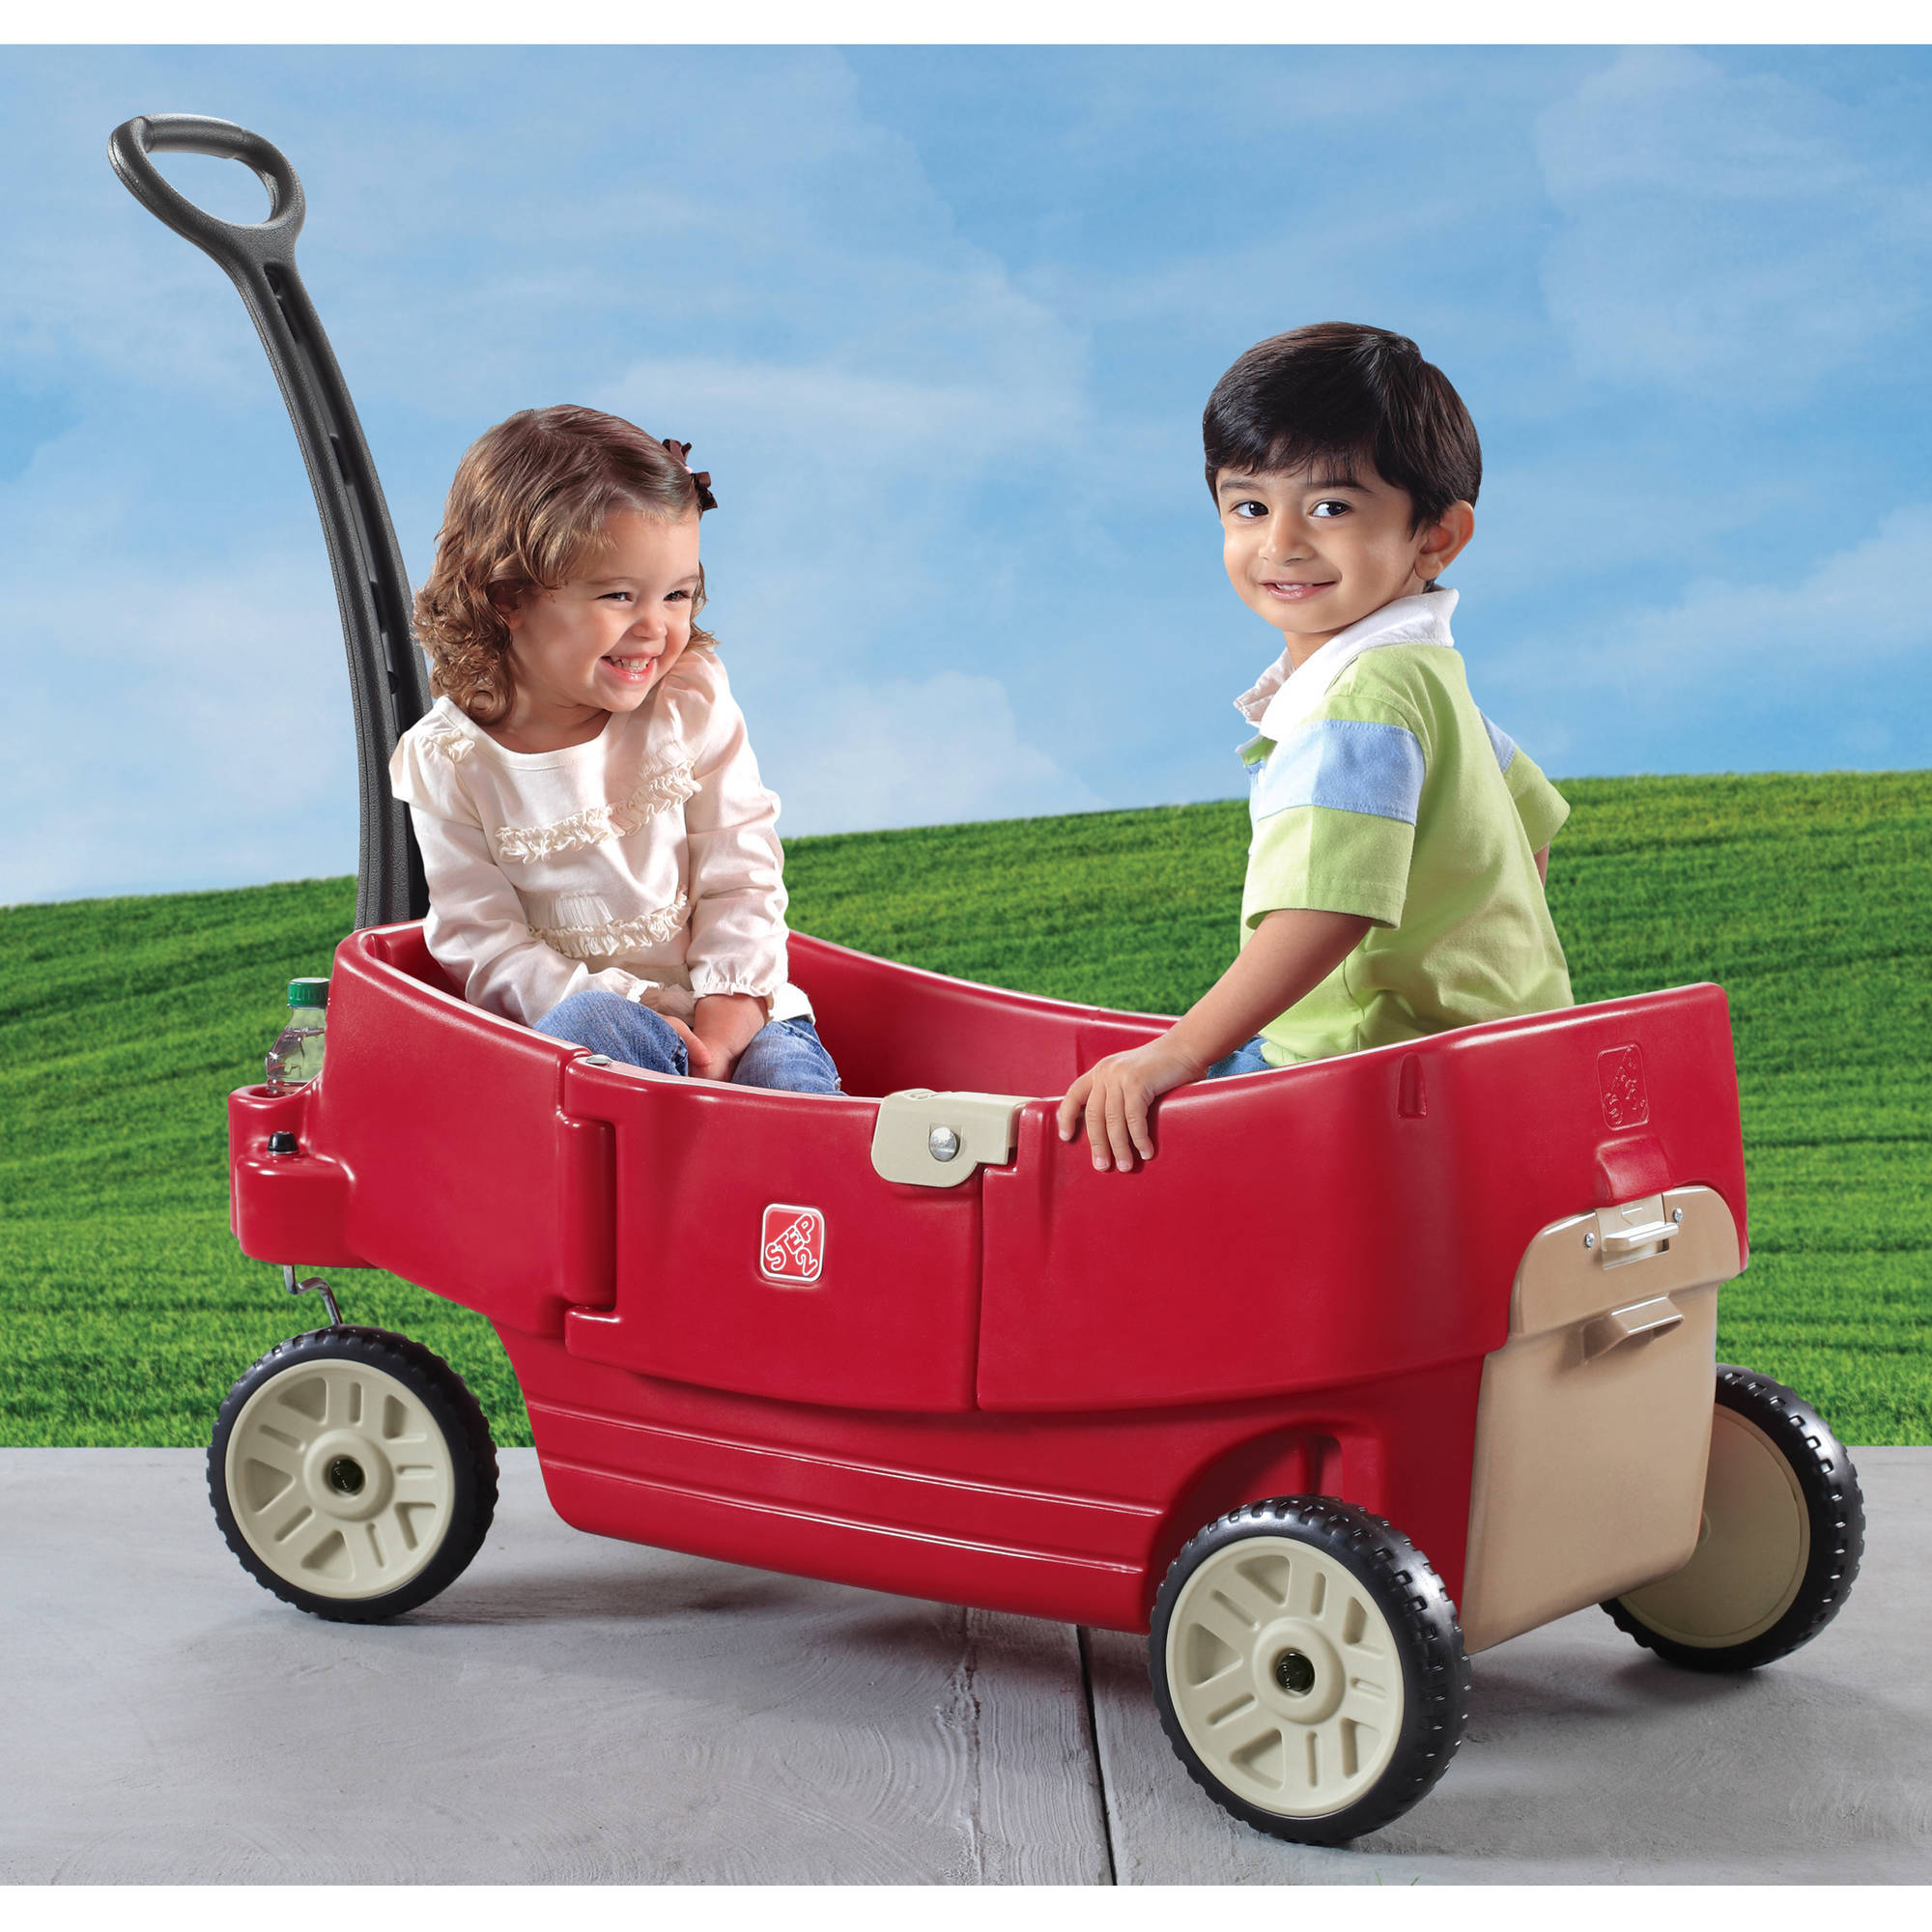 Step2 All-Around Wagon, Red with 6 Cup/Snack Holders